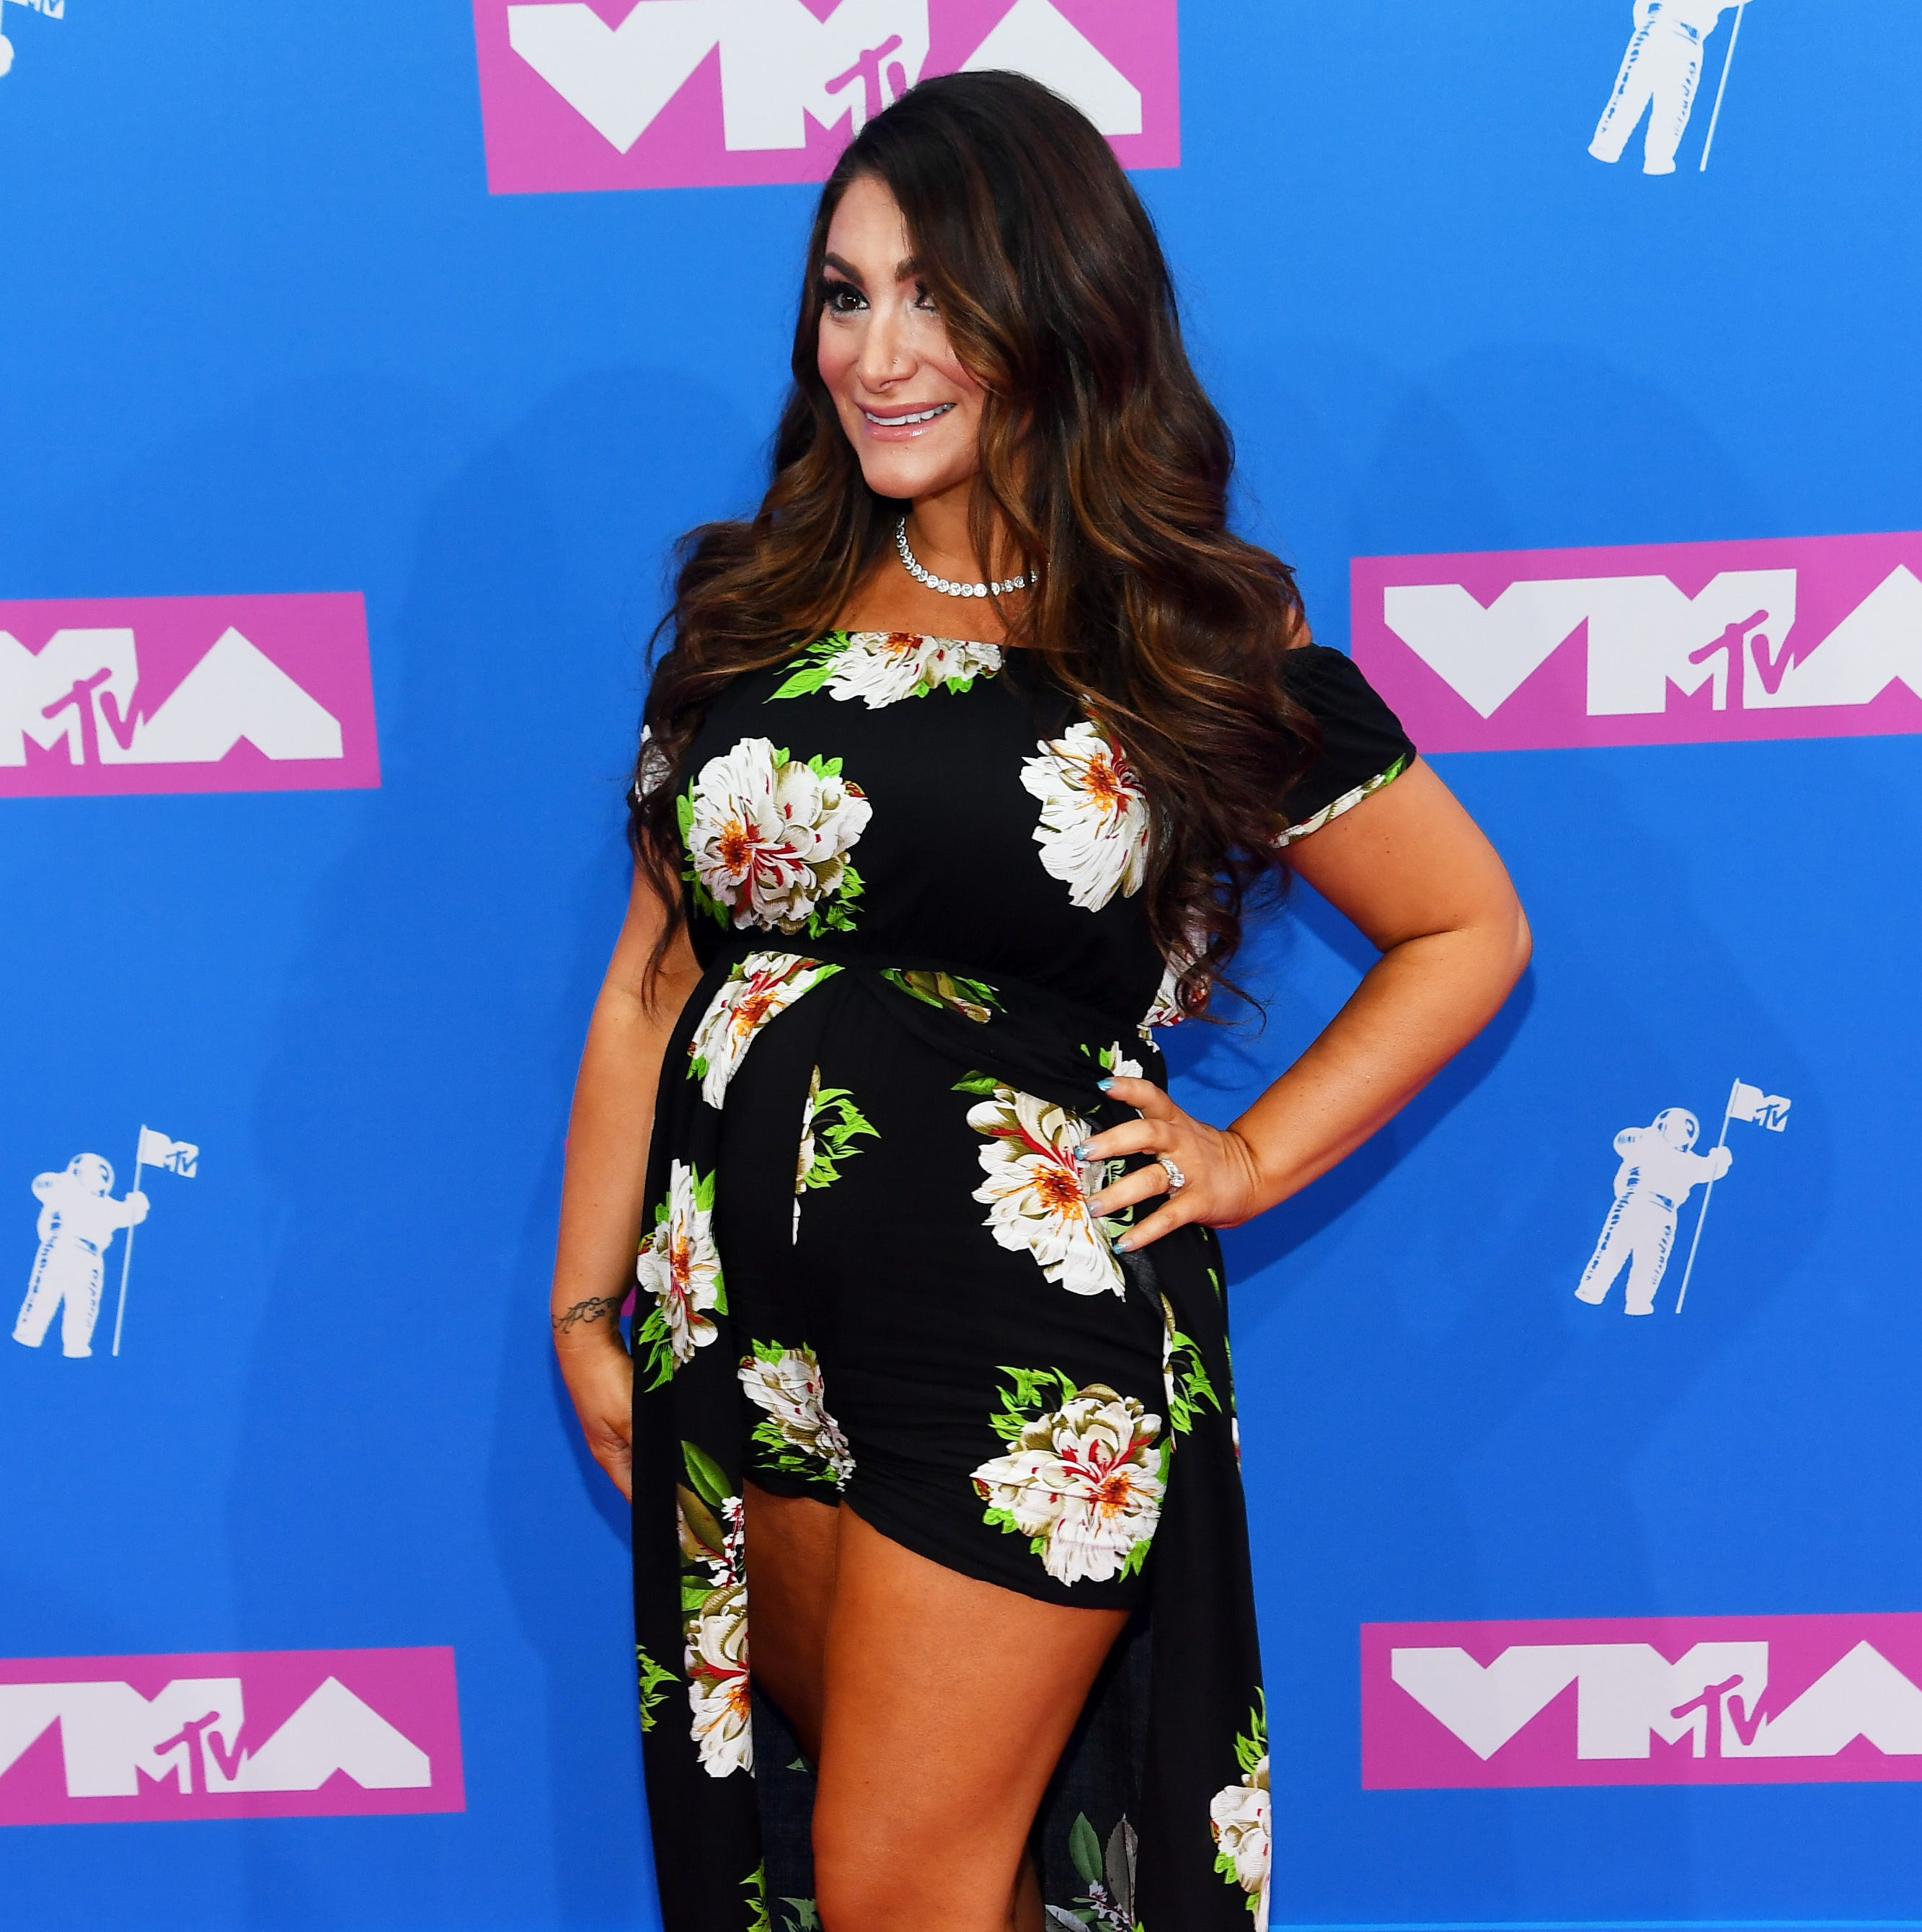 NEW YORK, NY - AUGUST 20:  Deena Cortese attends the 2018 MTV Video Music Awards at Radio City Music Hall on August 20, 2018 in New York City.  (Photo by Nicholas Hunt/Getty Images for MTV) ORG XMIT: 775210277 ORIG FILE ID: 1020245470